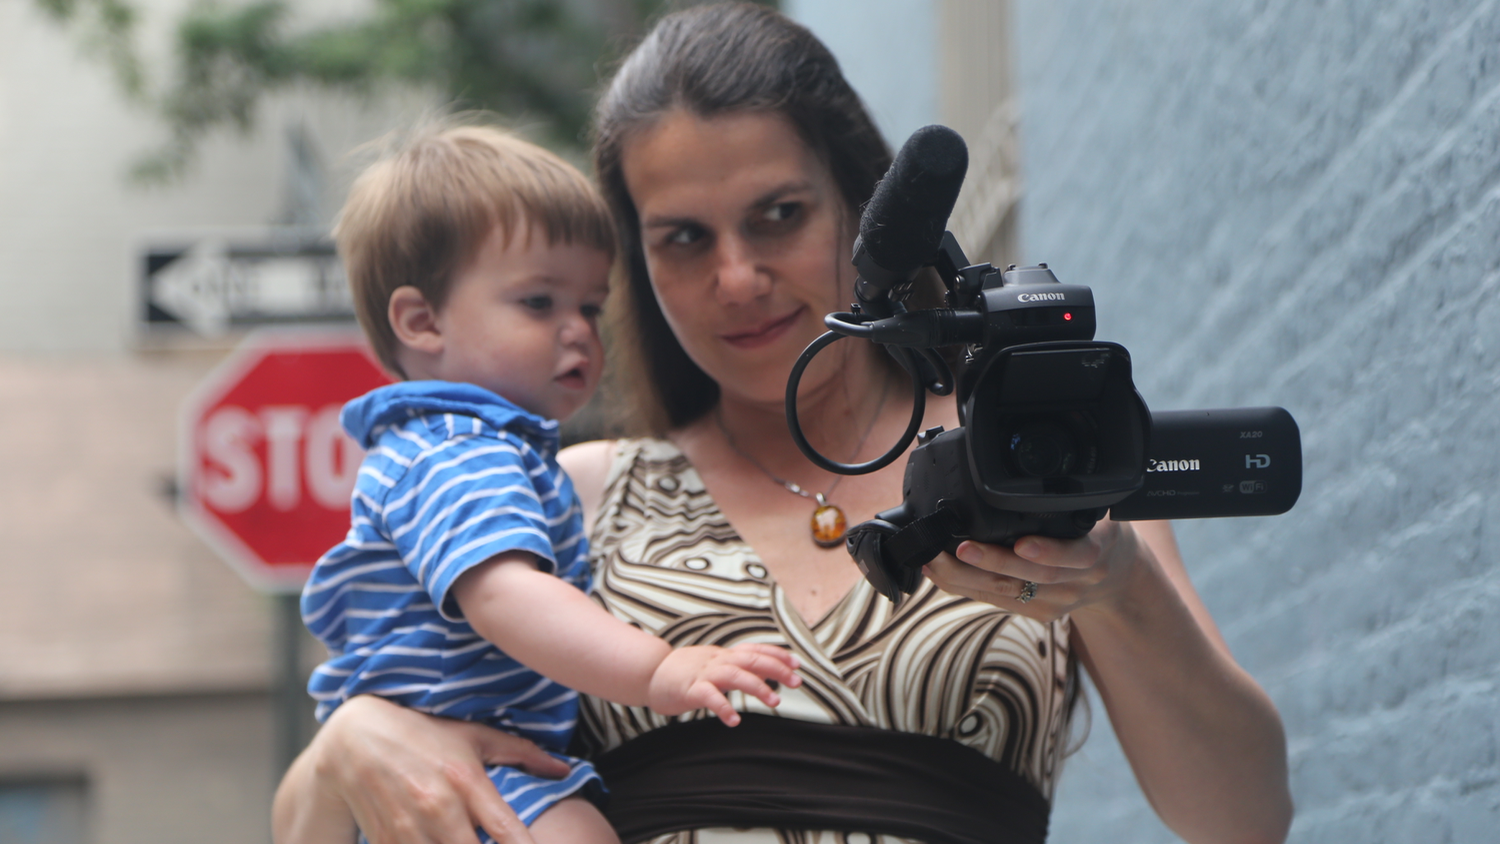 Director Alexandra Hidalgo Shows Santiago How To Use The Camera